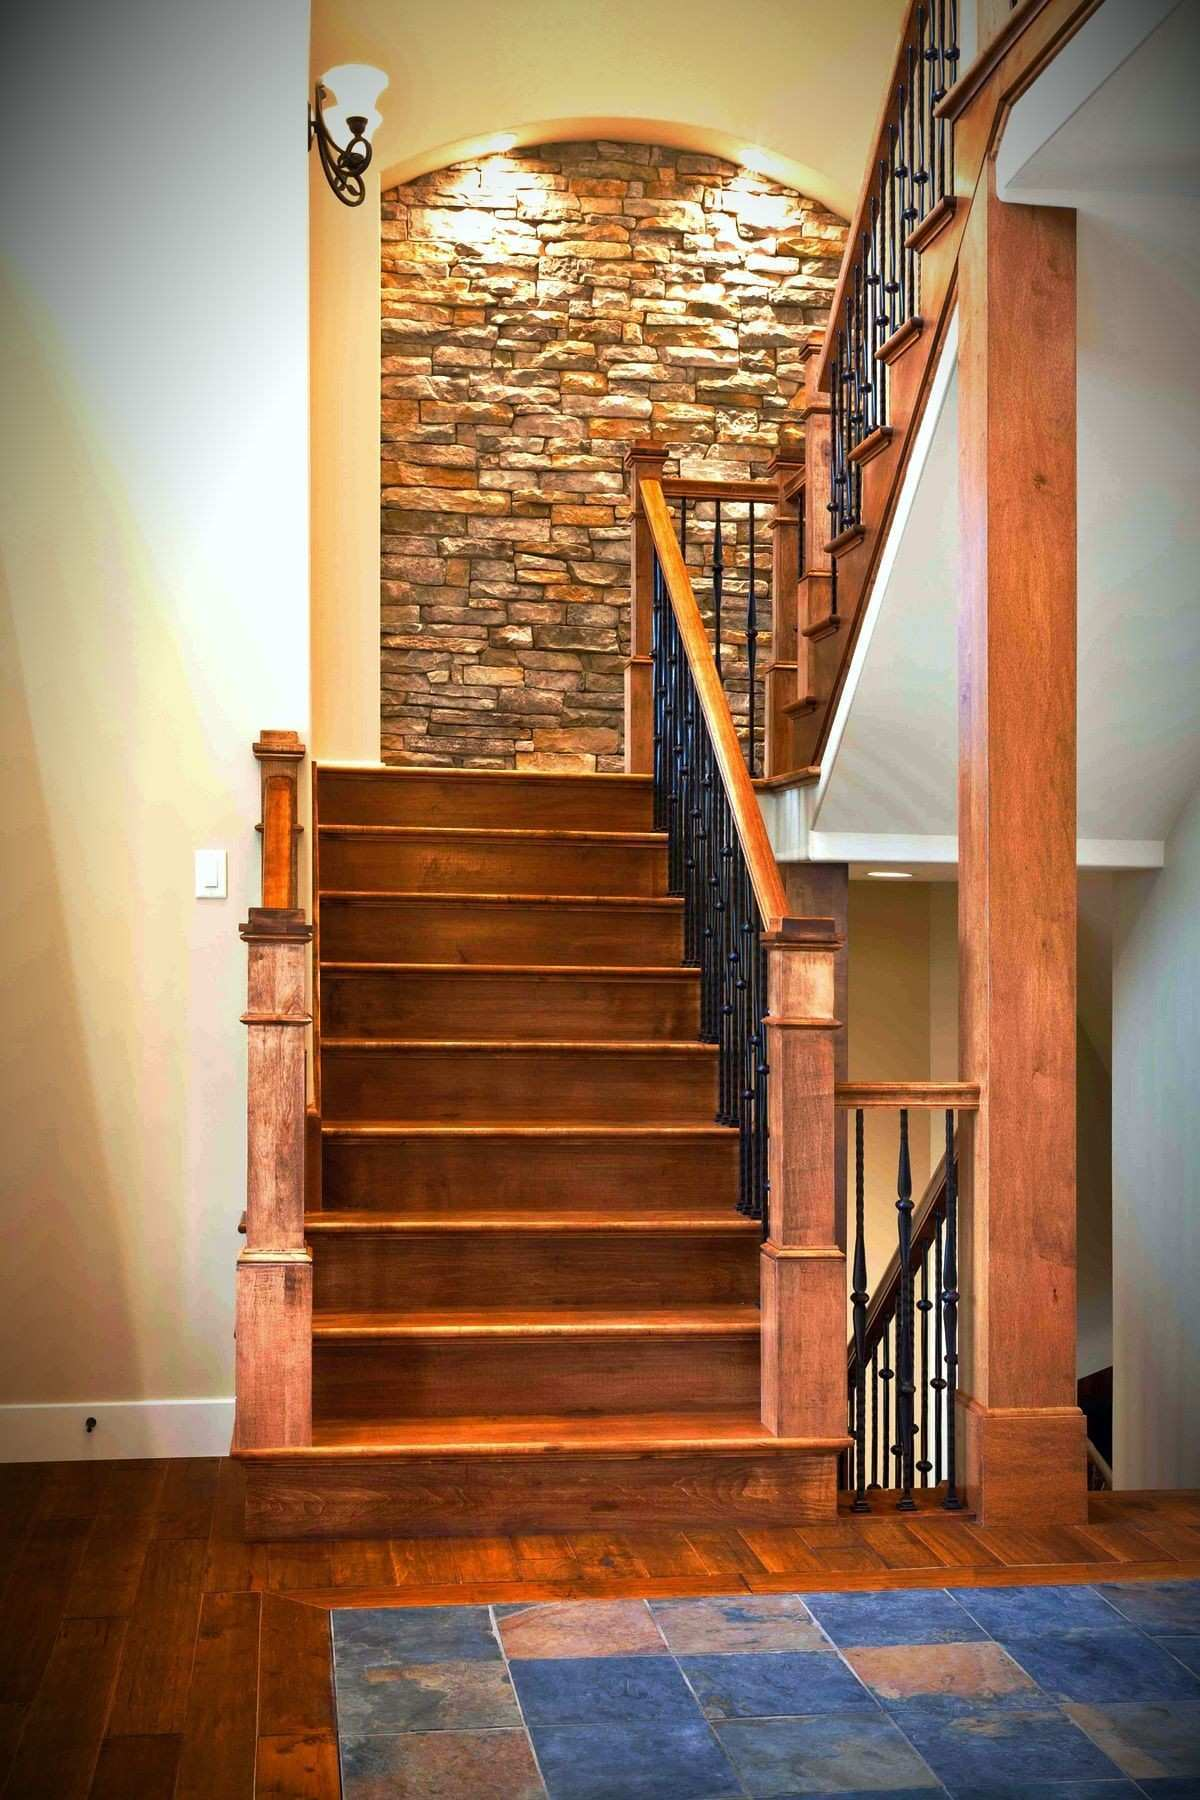 Stair Wall Decor Luxury View Of The Stairs From The Foyer A Blend Of  Textures Stone